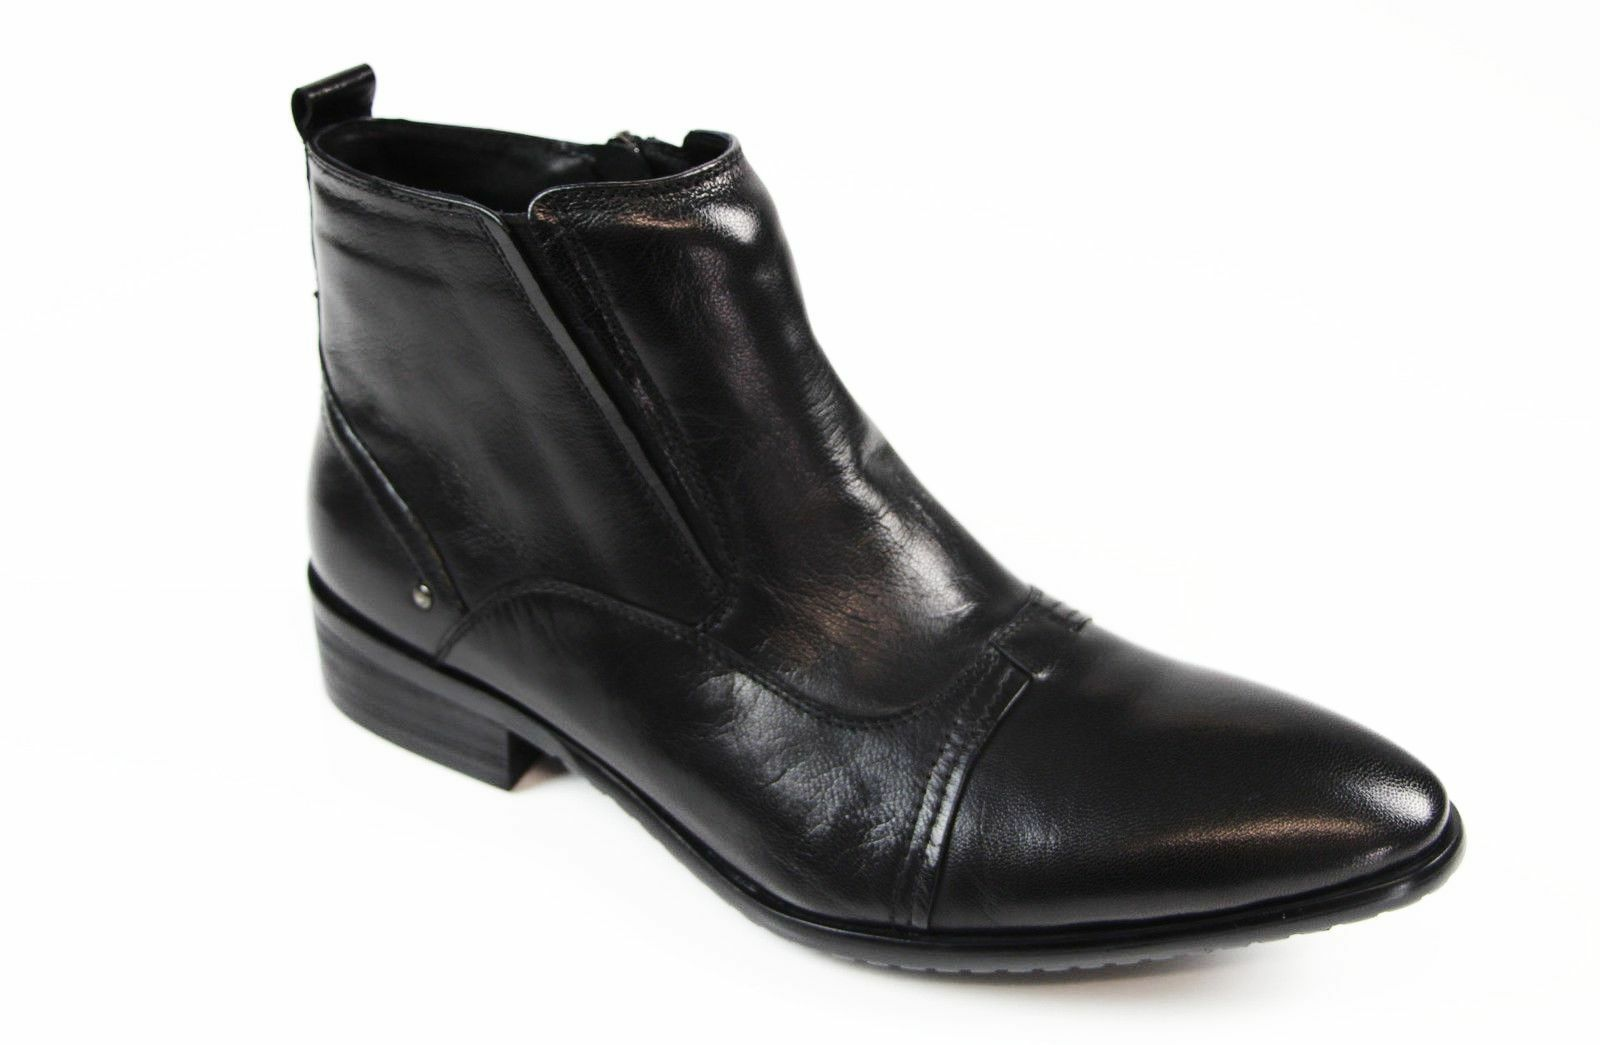 MENS AUSTRALIAN DESIGN BLACK FORMAL CASUAL LEATHER ZIP SHOES FORMAL DRESS BOOTS